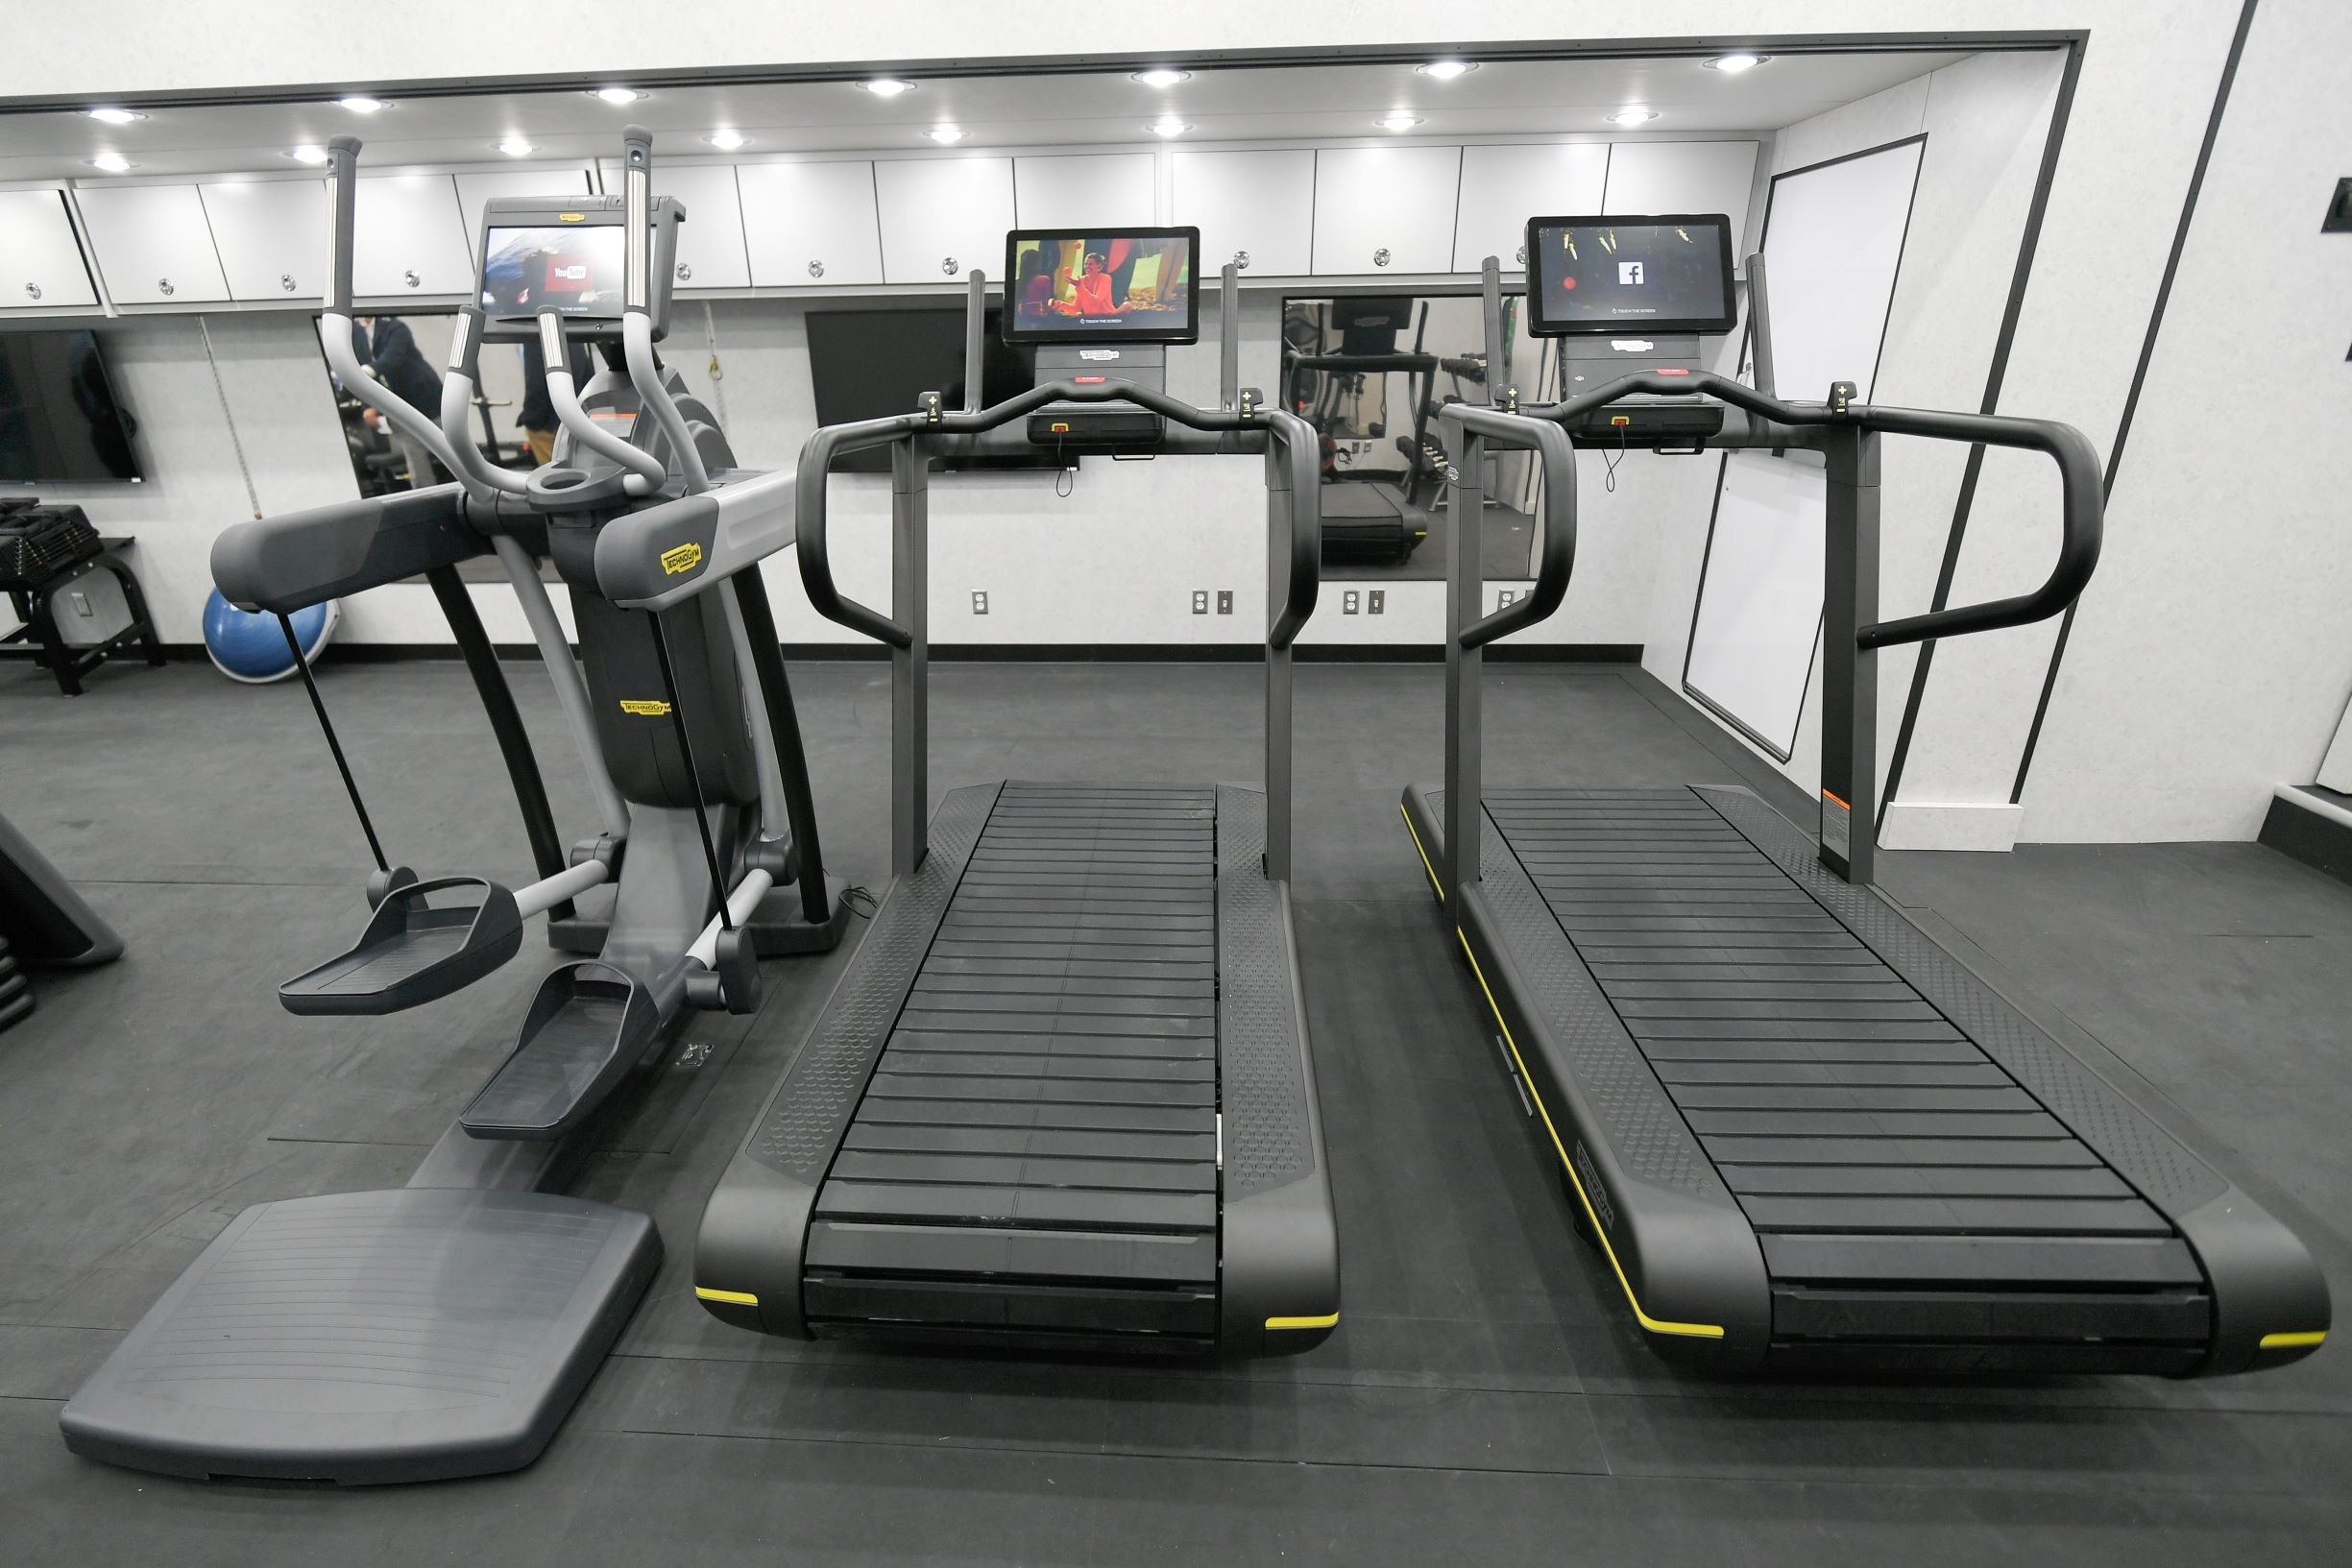 Pga Tour Chooses Technogym To Outfit New Innovative Mobile